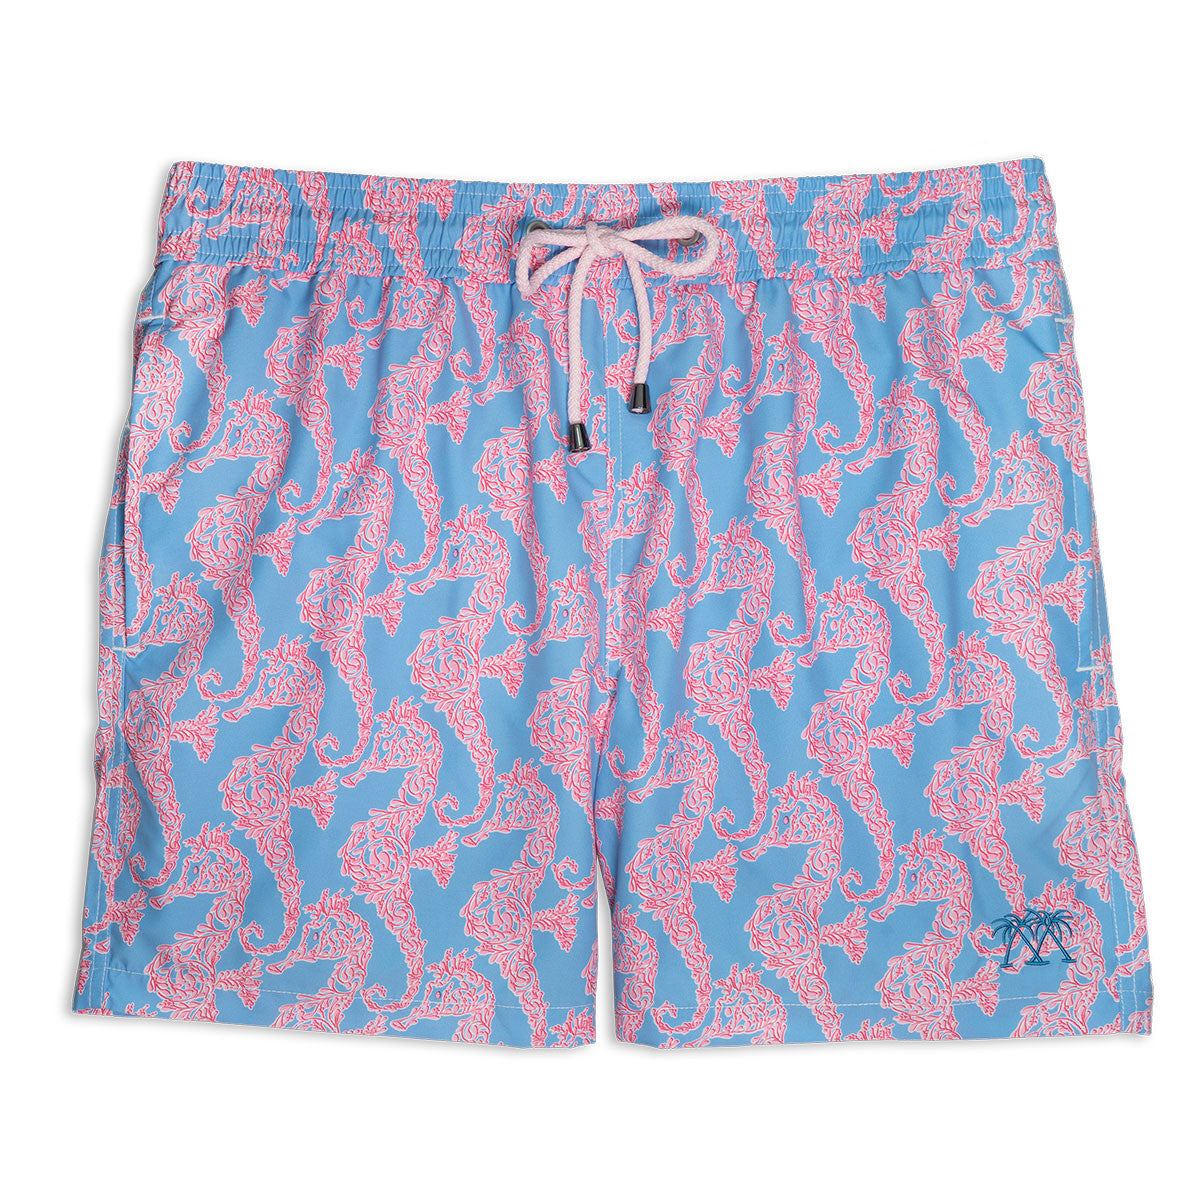 Mens Trunks (Seahorse, Blue/Pink)